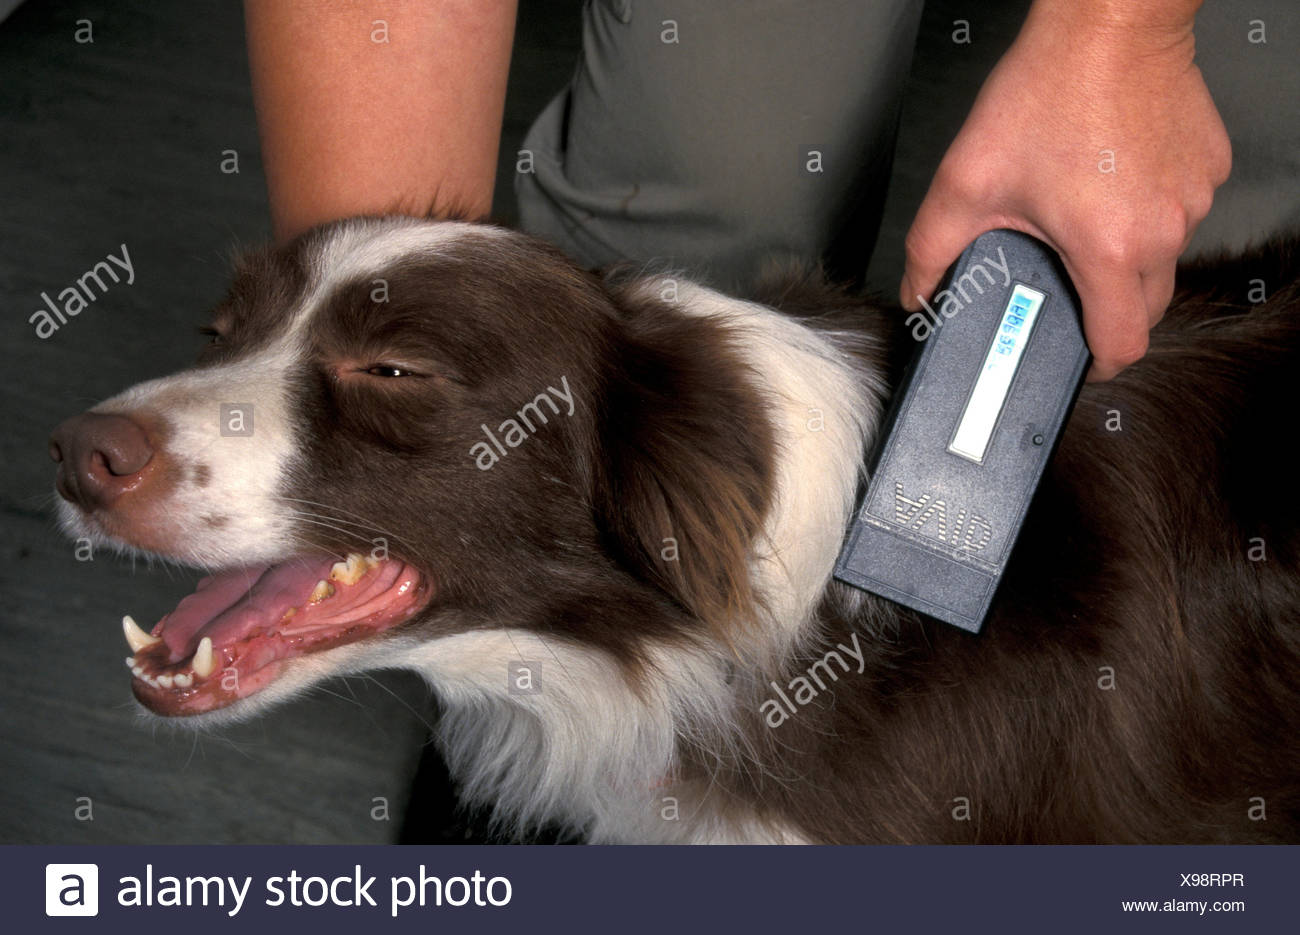 Microchip Dog Stock Photos & Microchip Dog Stock Images - Alamy